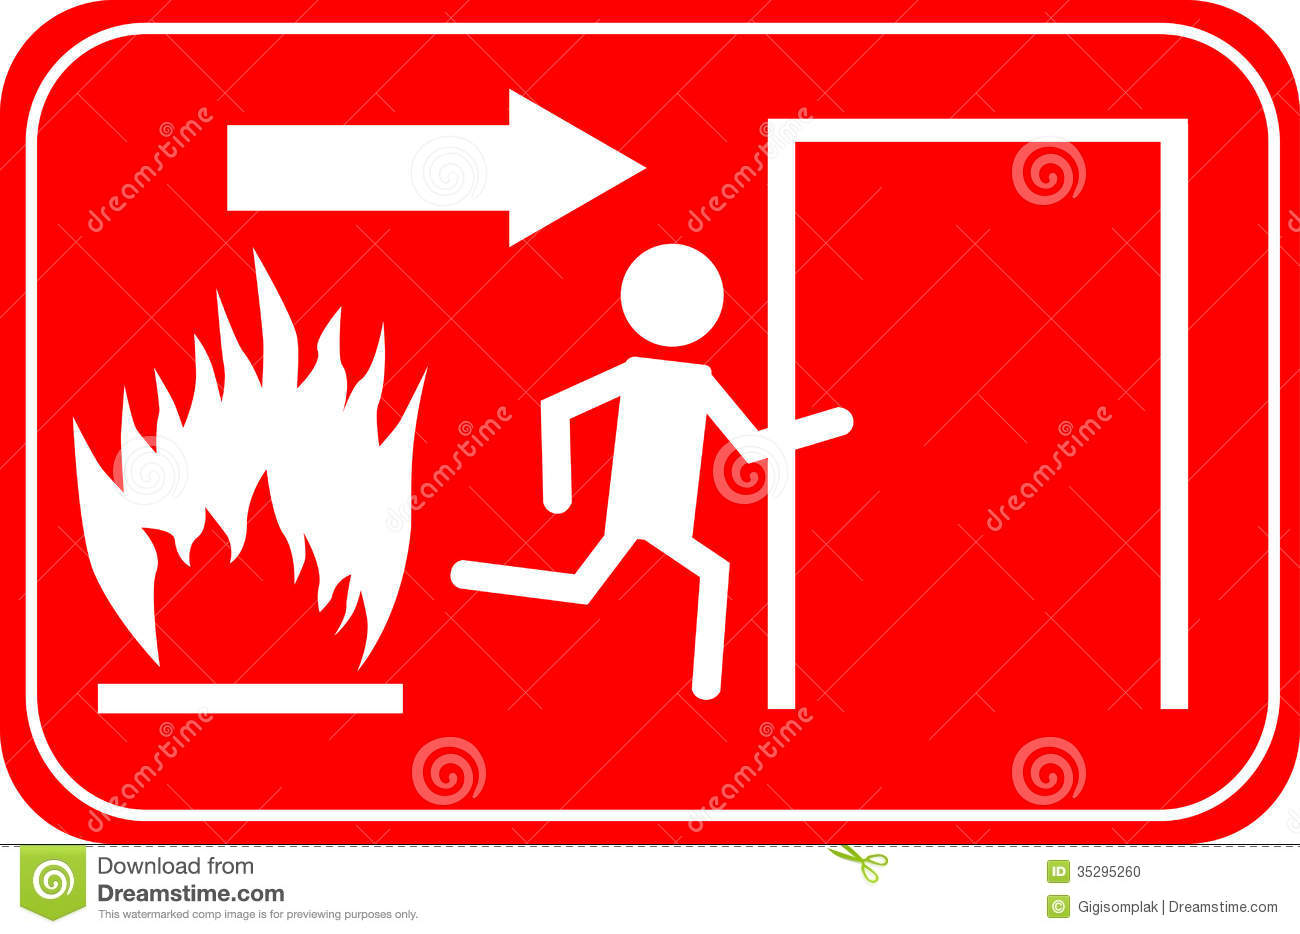 Fire Exit Signs Stock Photos, Images, & Pictures - 239 Images